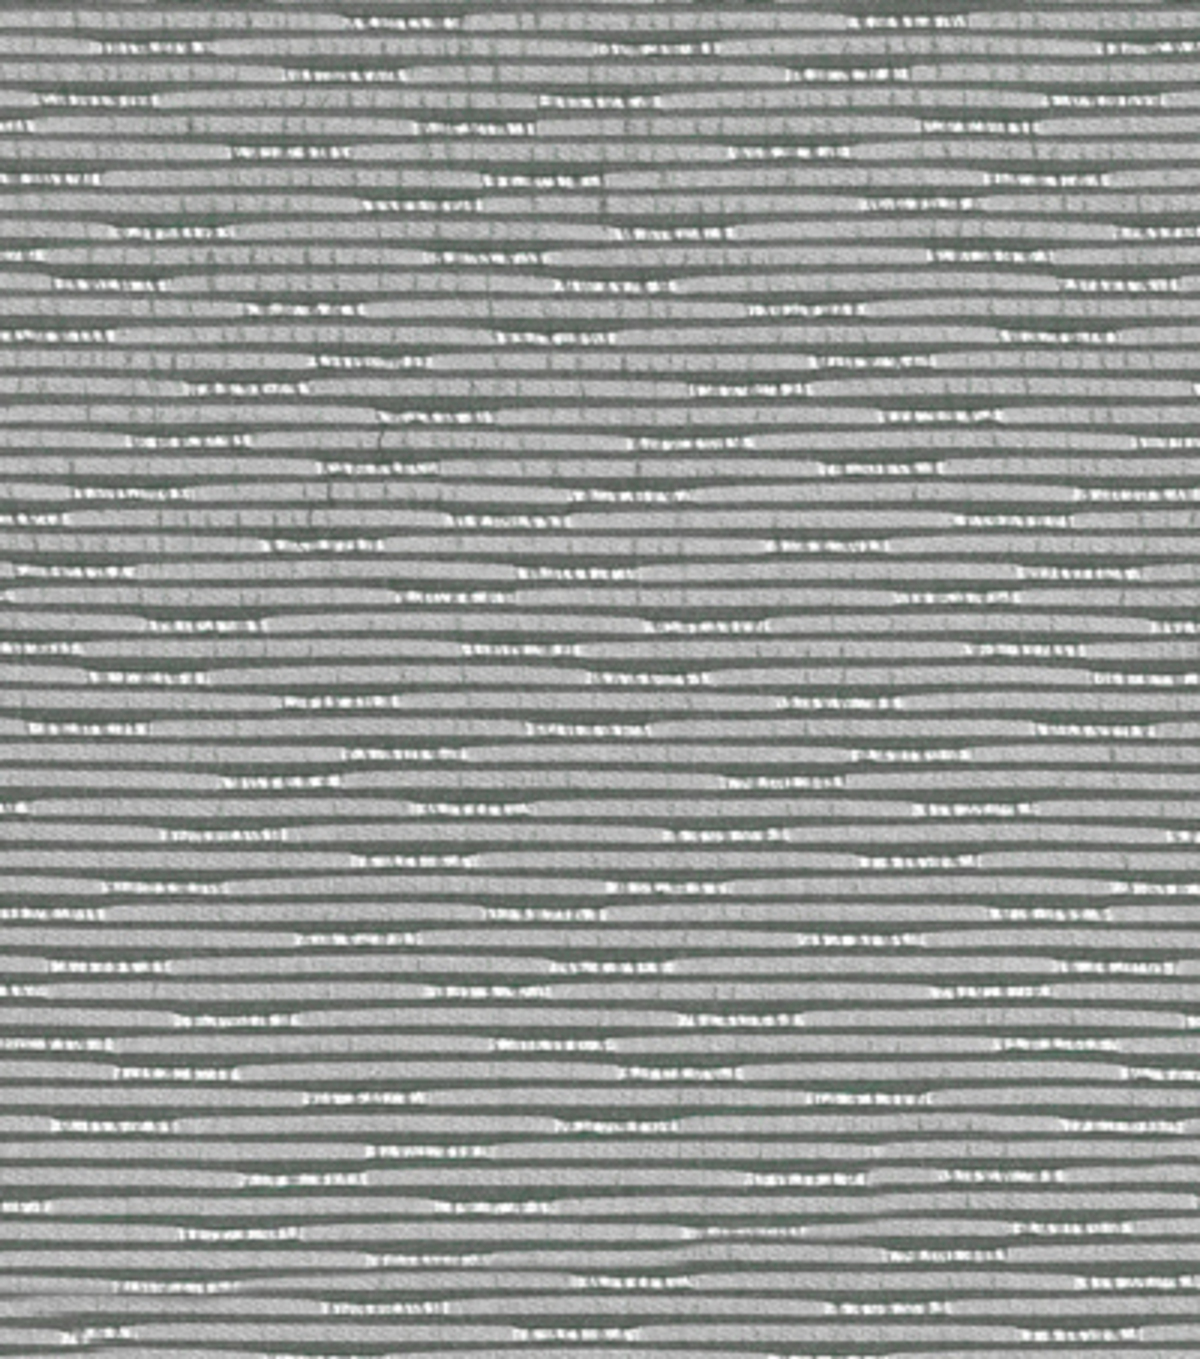 Home Decor 8\u0022x8\u0022 Fabric Swatch-Richloom Studio Oboe Snow